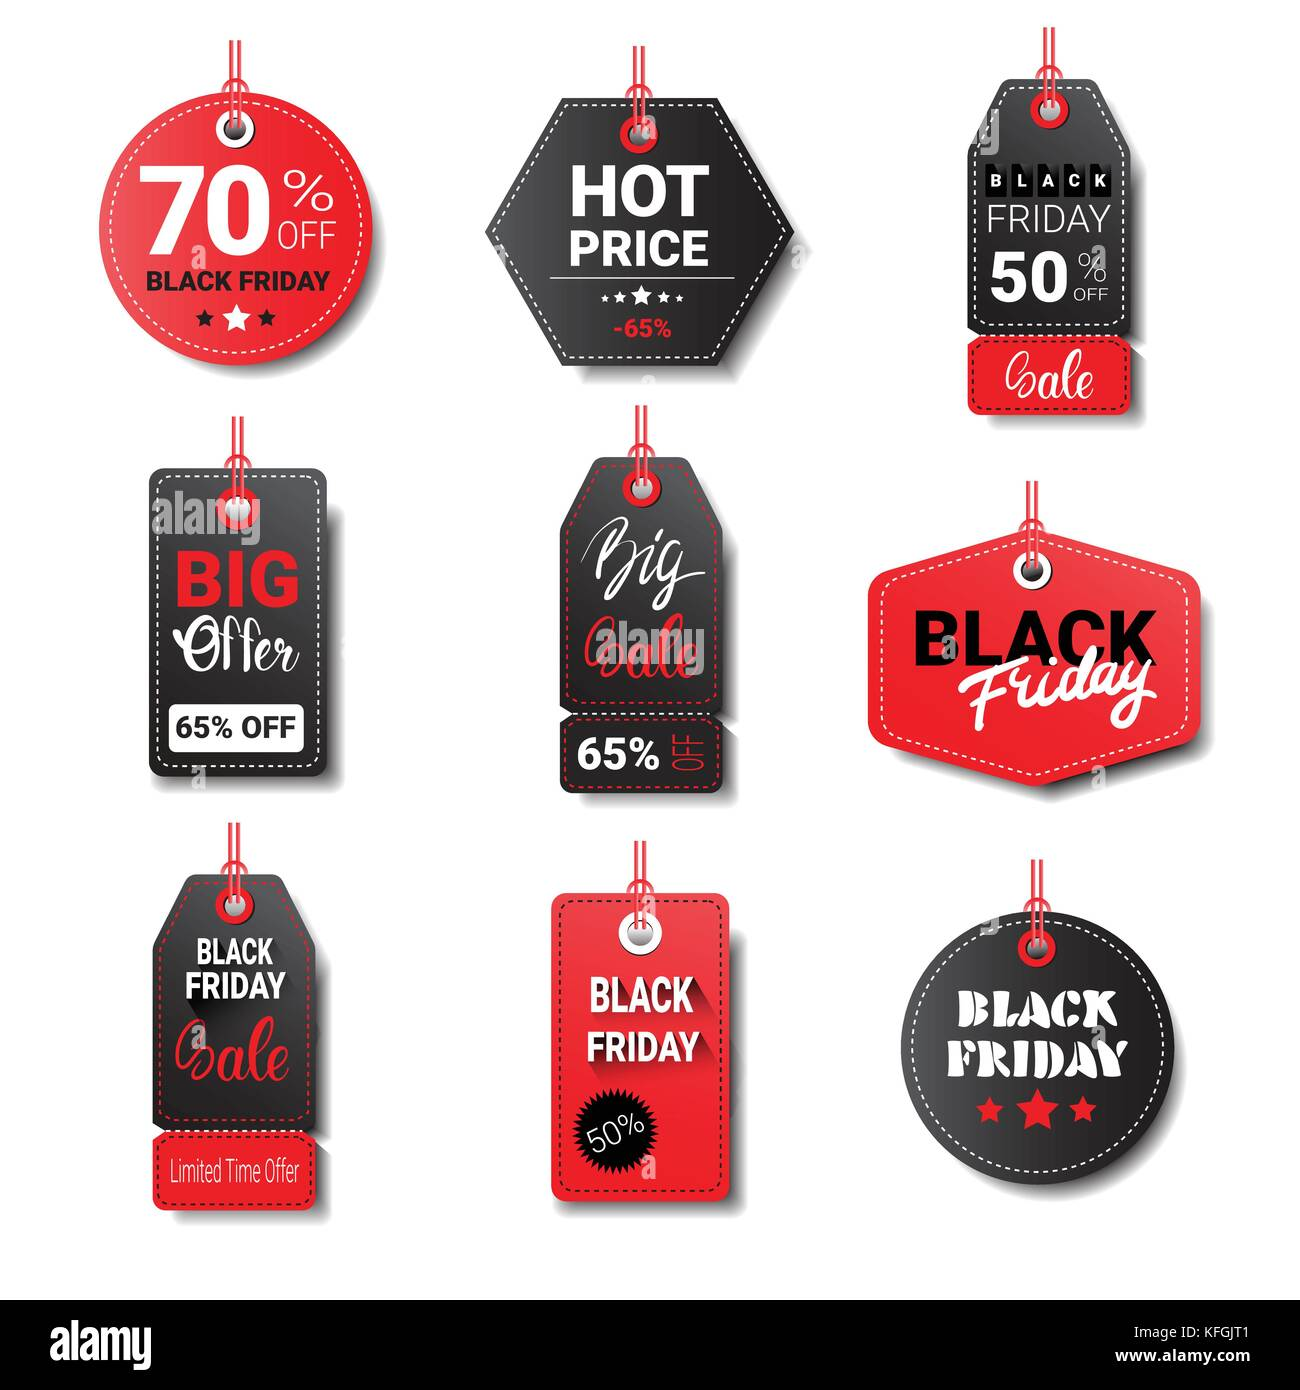 Black Friday Sale Tags Collection Isolated On White Background Logos Stock Vector Image Art Alamy